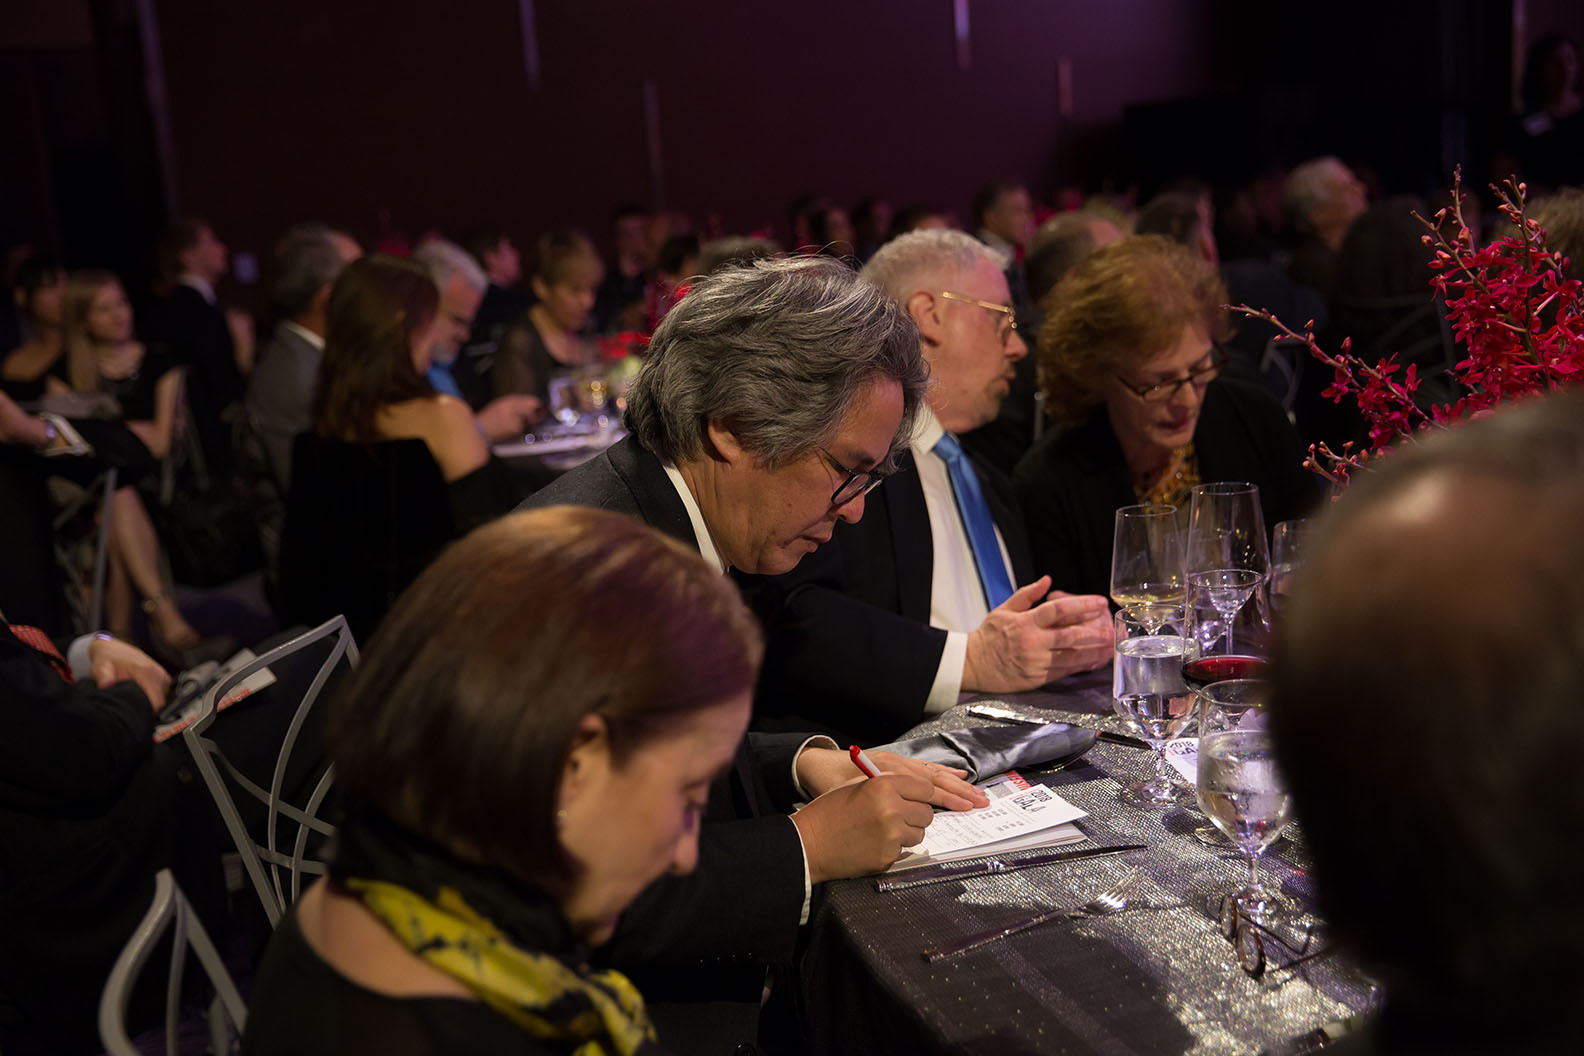 Gala attendees at a dinner table